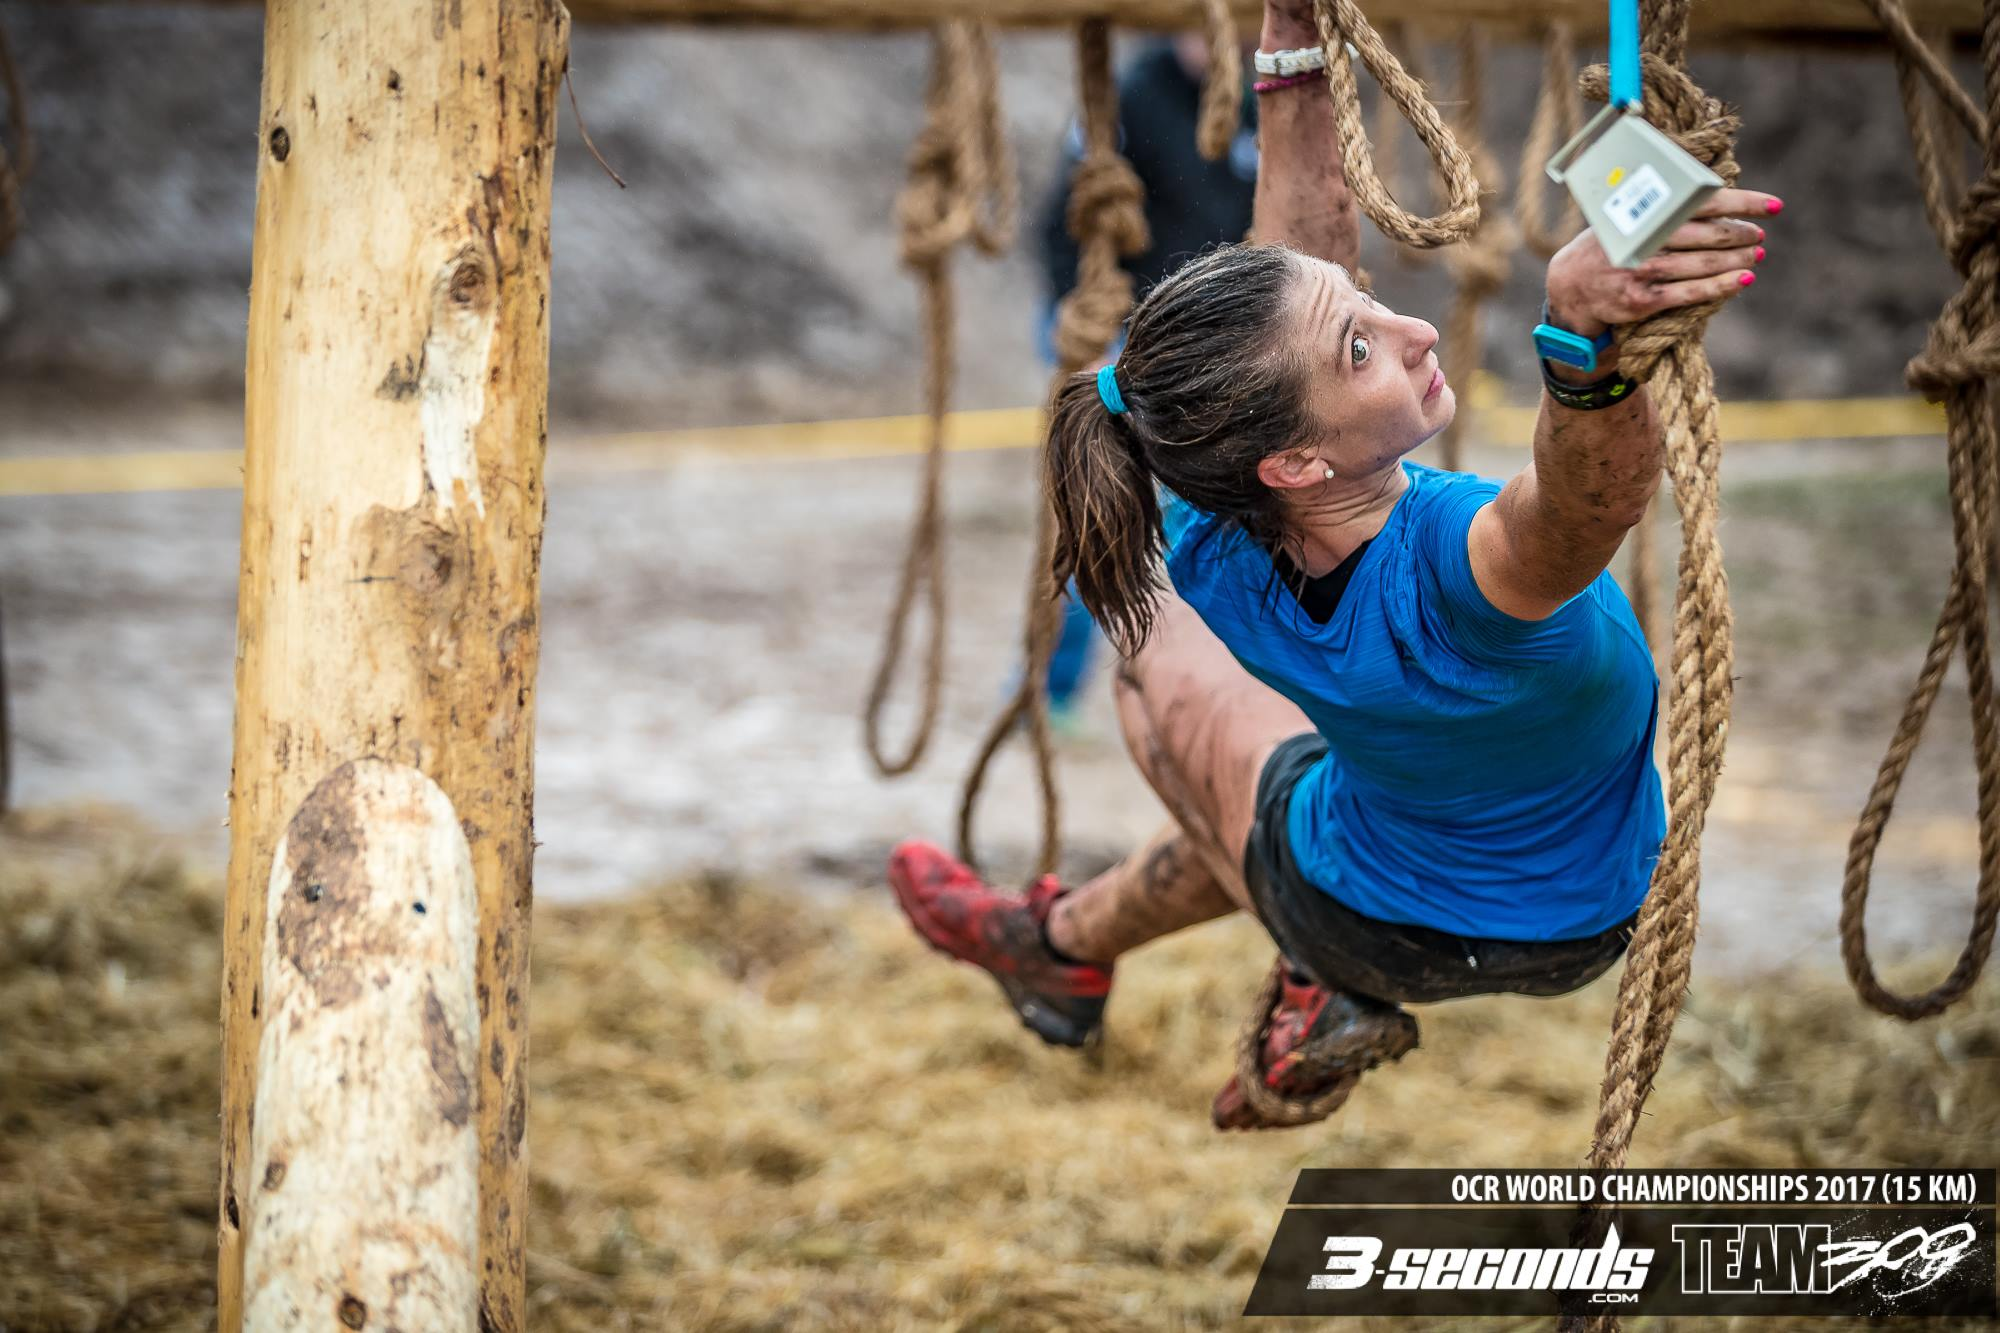 Nicole Mericle on Mental Game of Racing, Balance in Life and in Diet